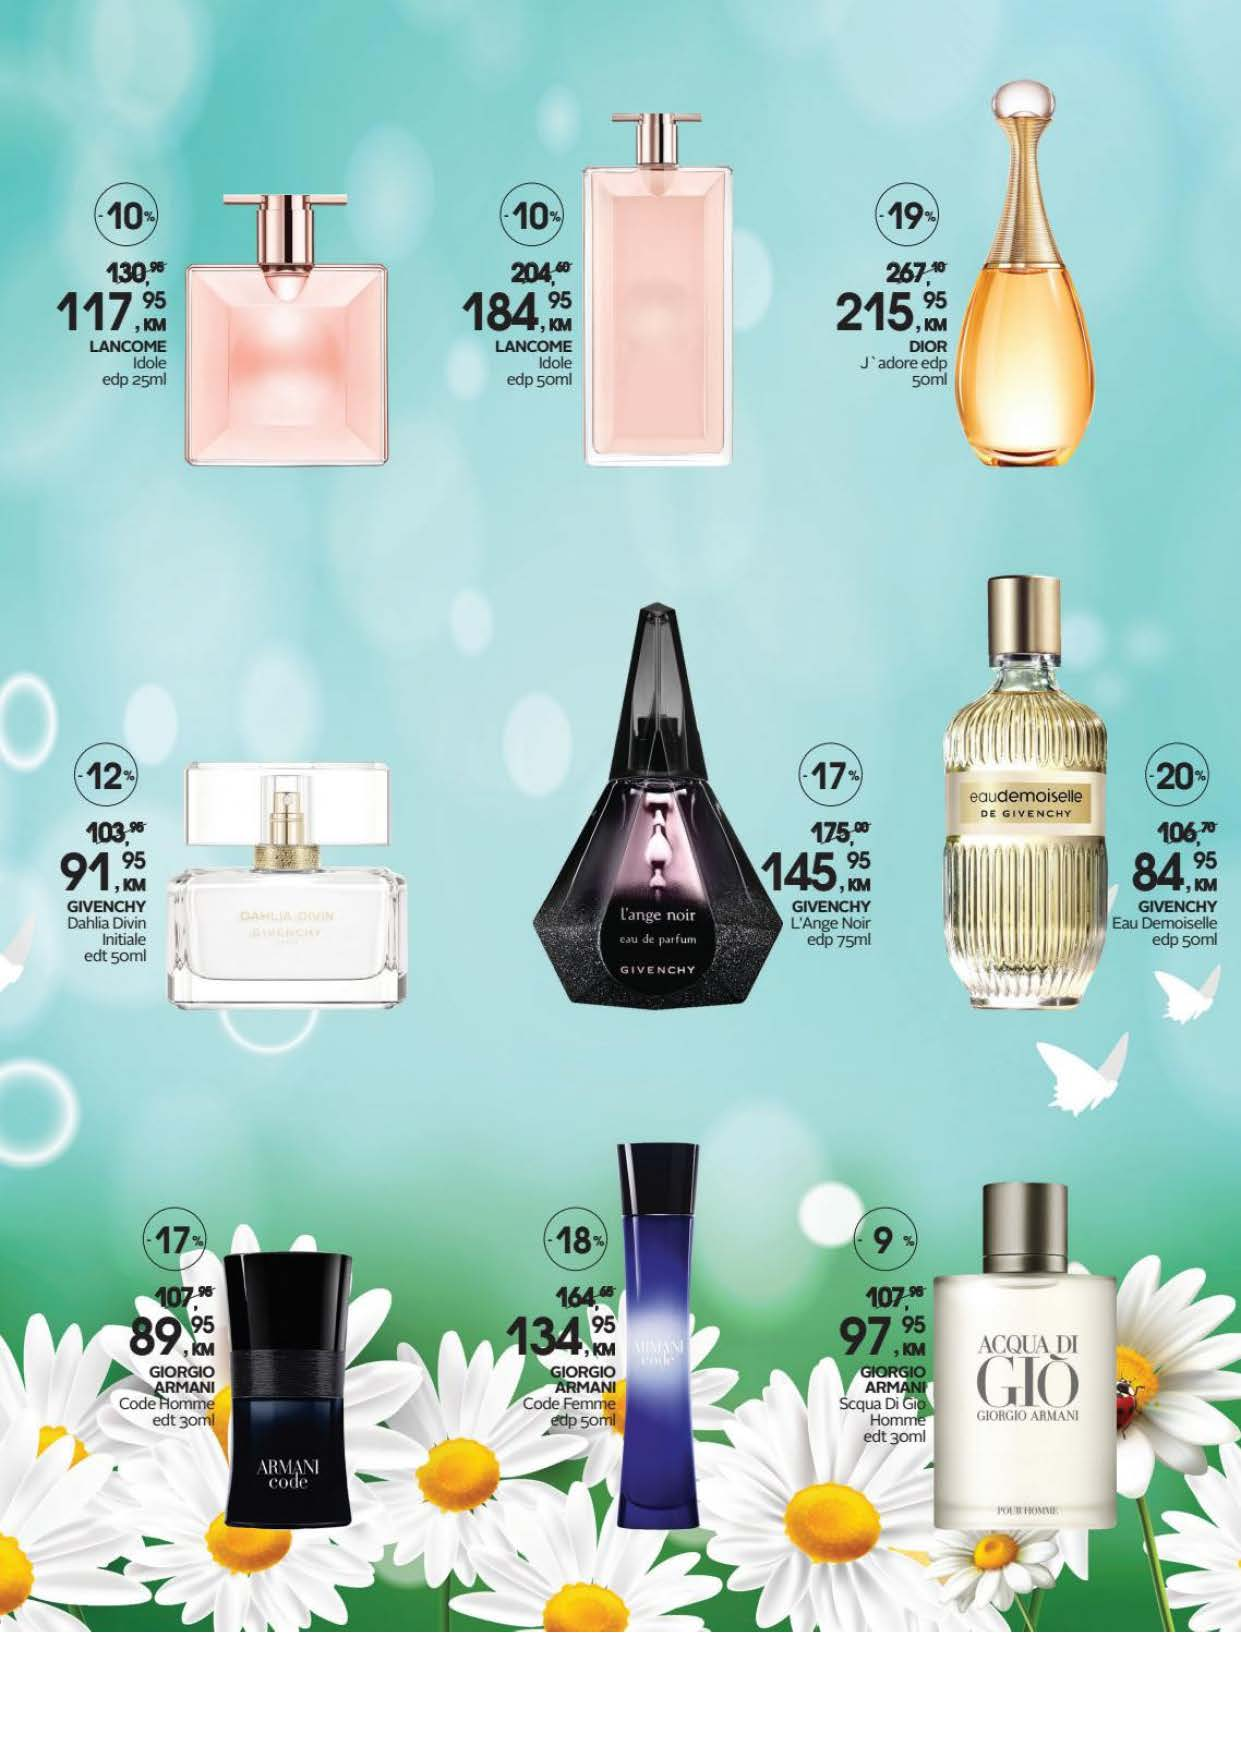 COSMETIC MARKET CM Katalog APRIL 2021 16.04.2021. 30.04.2021. Page 05